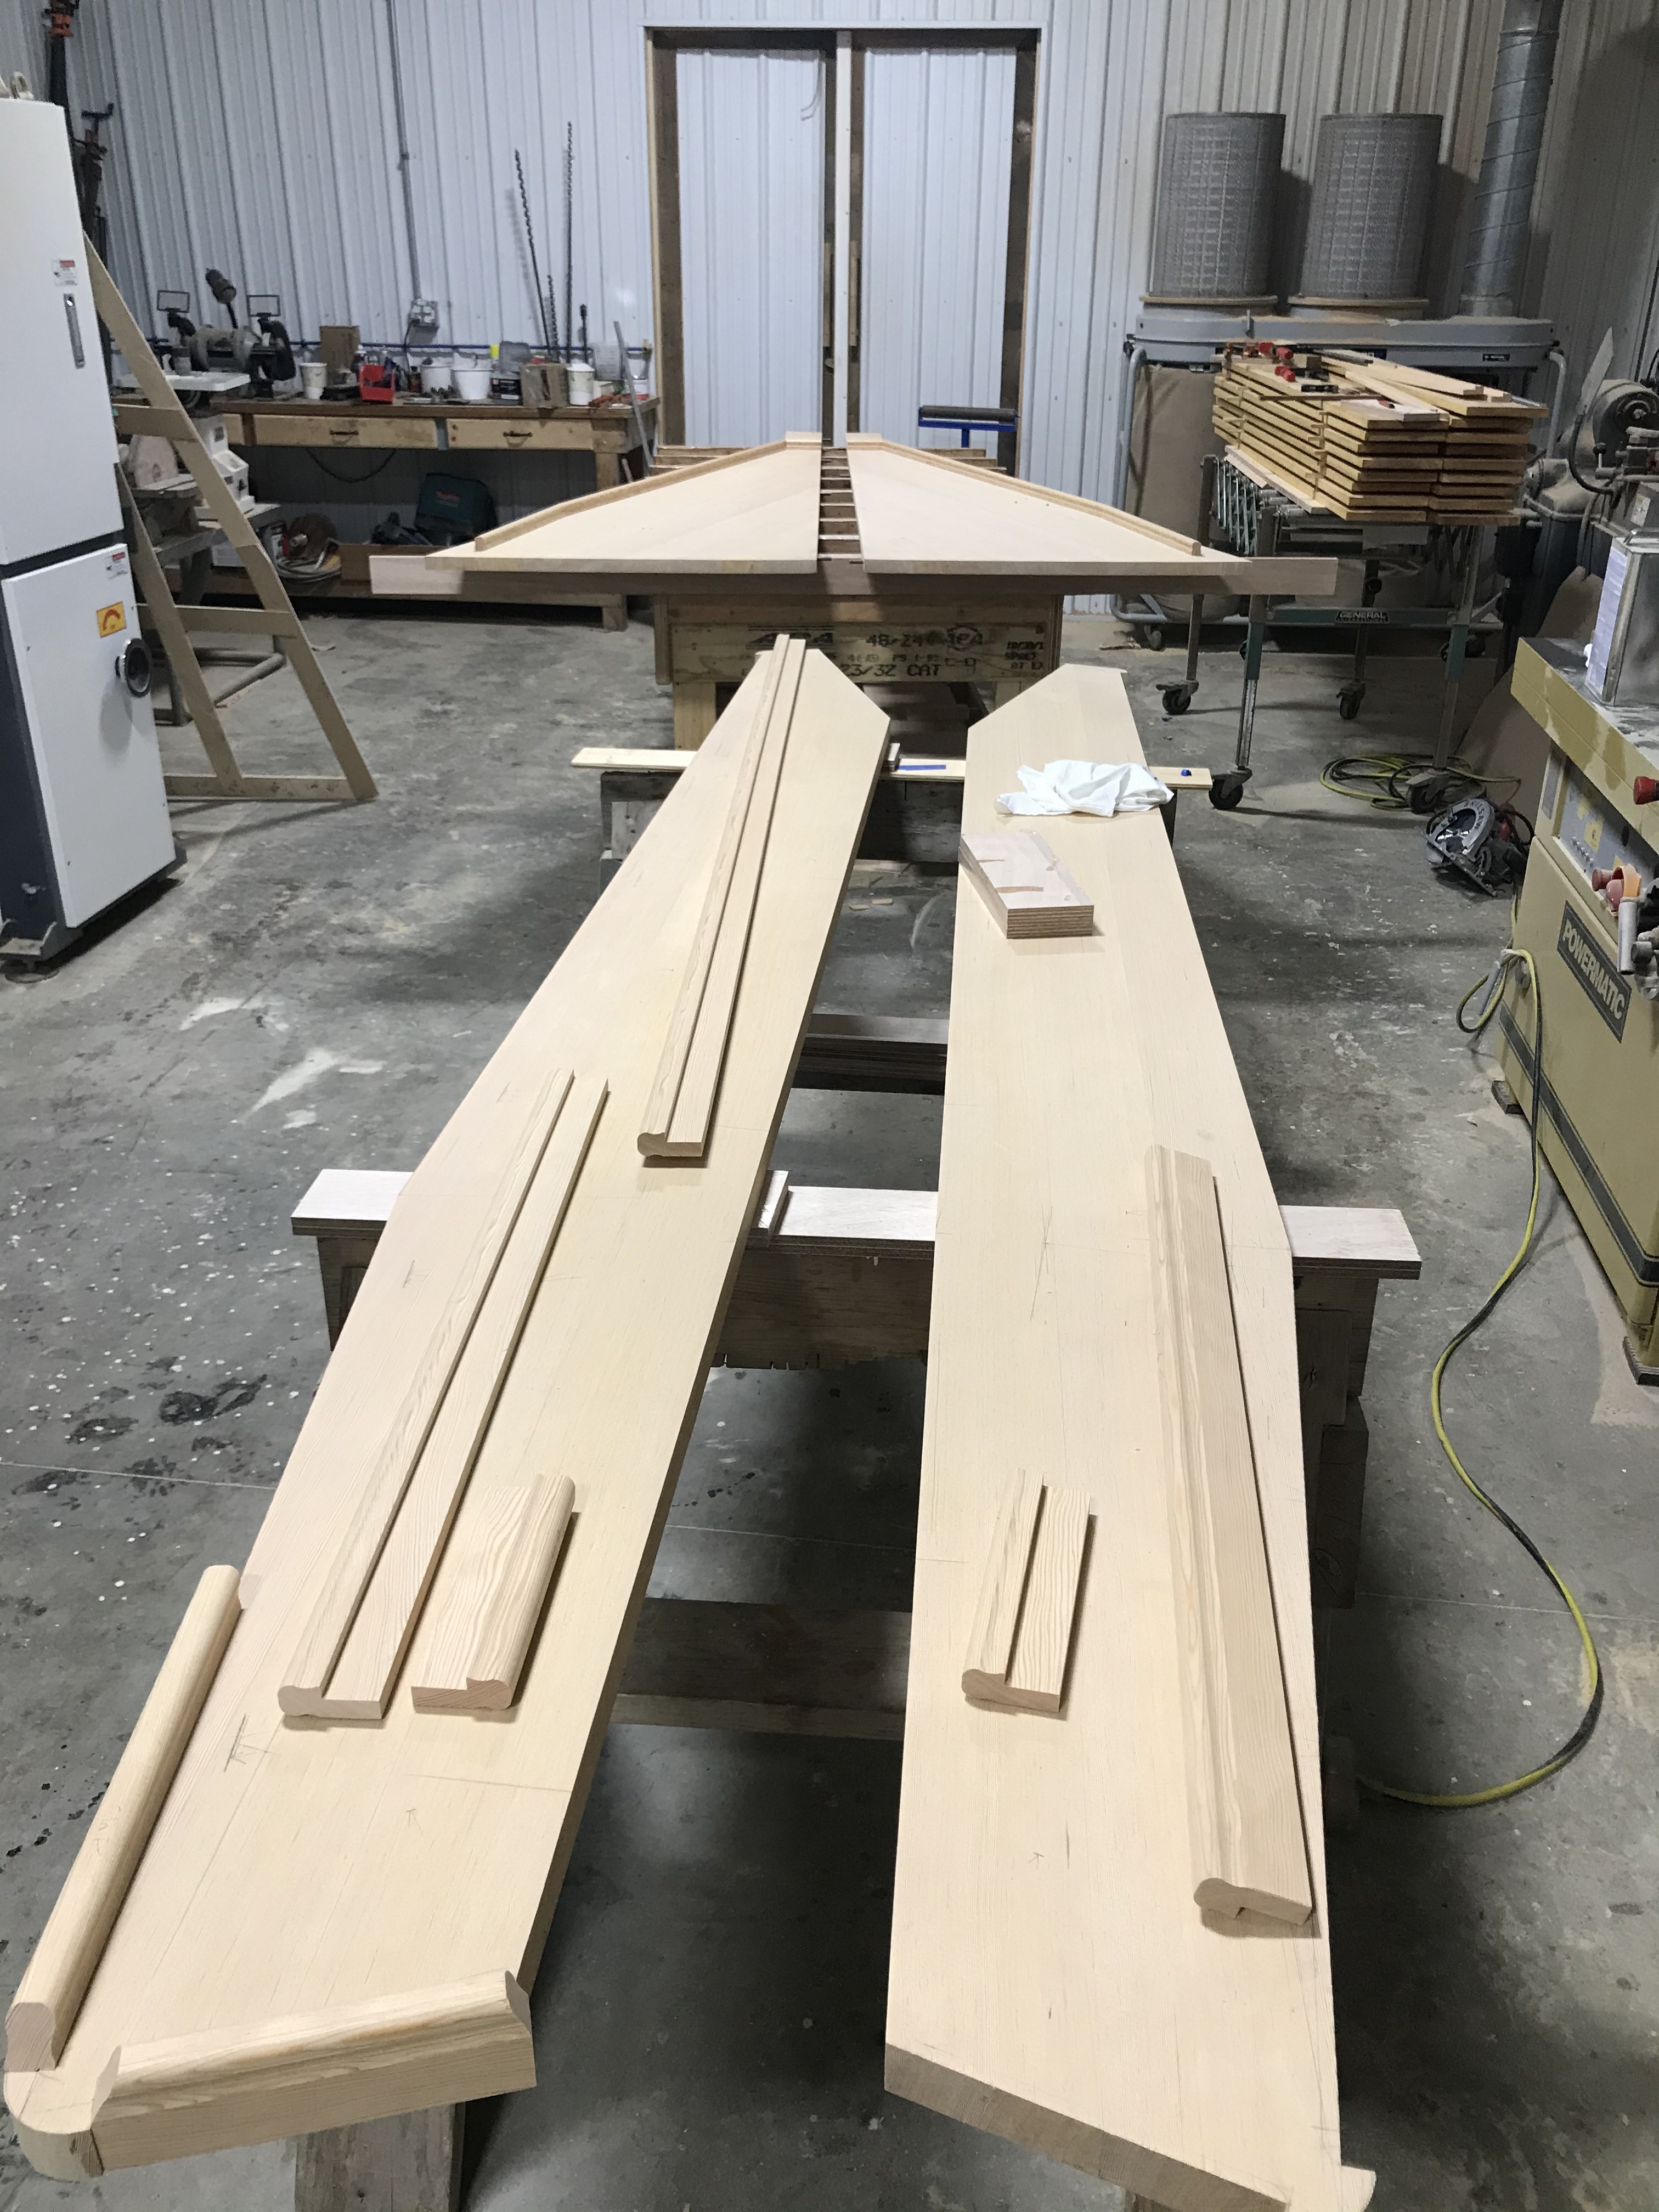 This table is coming together beautifully.  It is being built of Douglas Fir and is constructed to match the same profile and area of the original table.  In the foreground you can see the folding leaves being prepared for fiddles, and the fixed portion of the table is in the background.